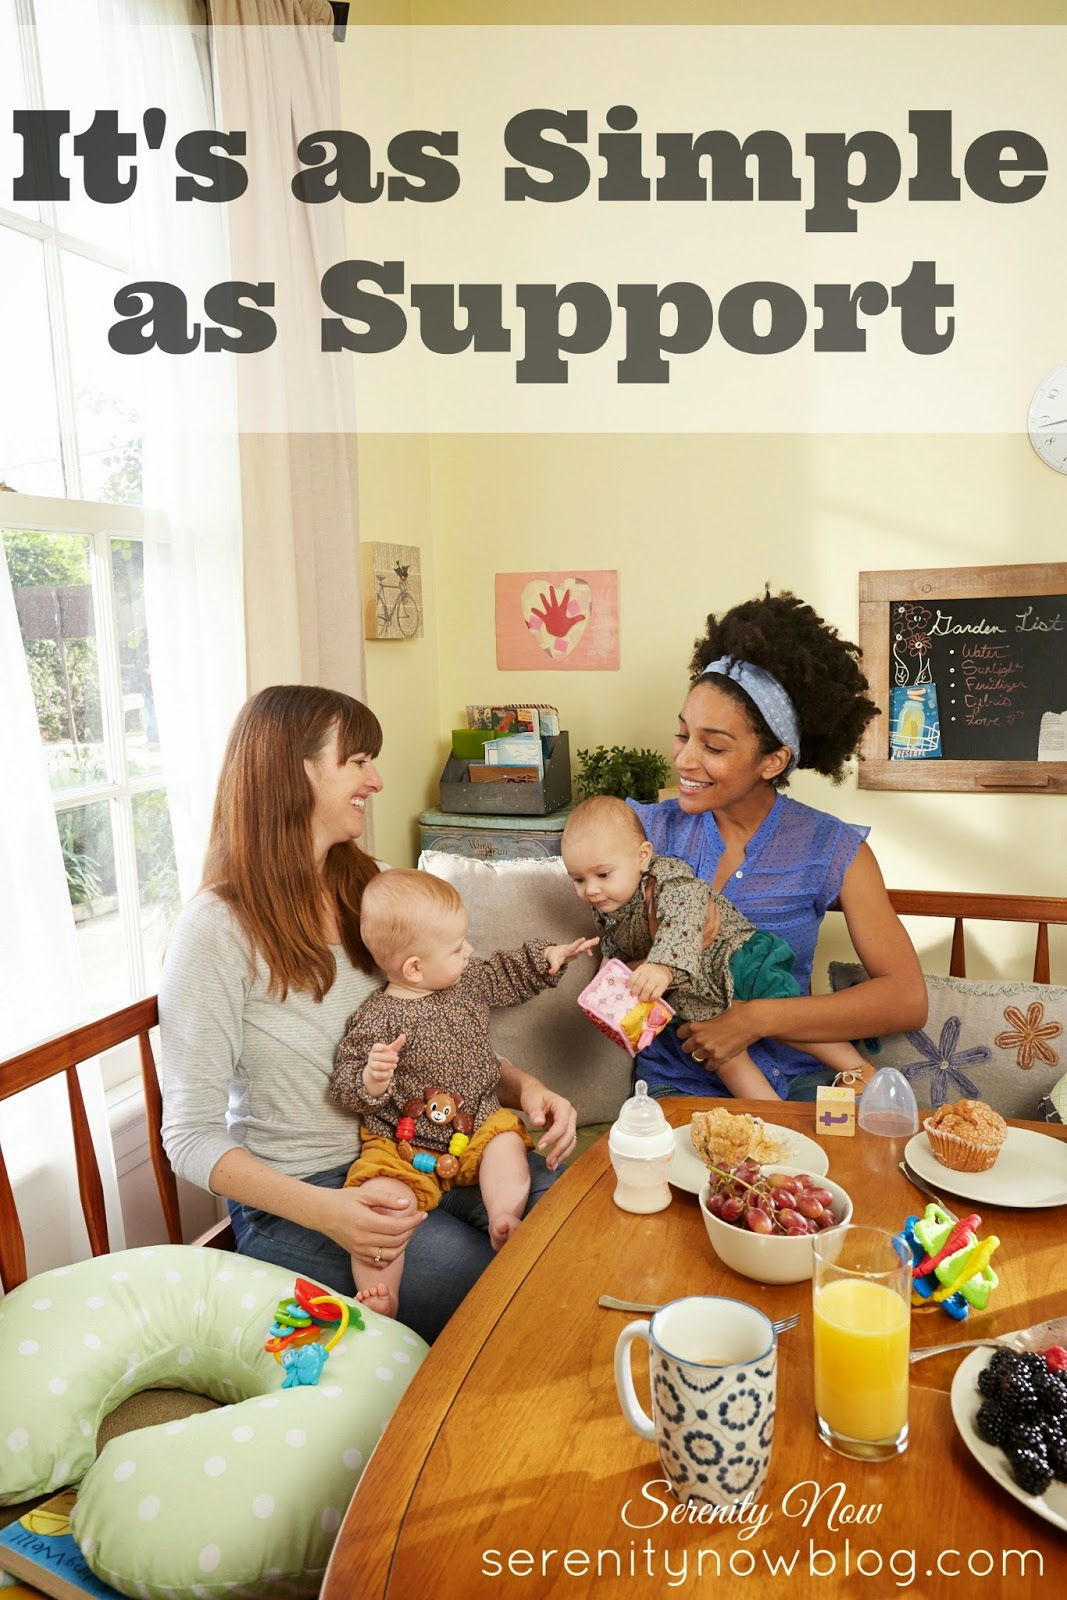 How to Support Other Moms, Even When Their Parenting Styles are Different- from Serenity Now #sisterhoodunite #parentsfirst